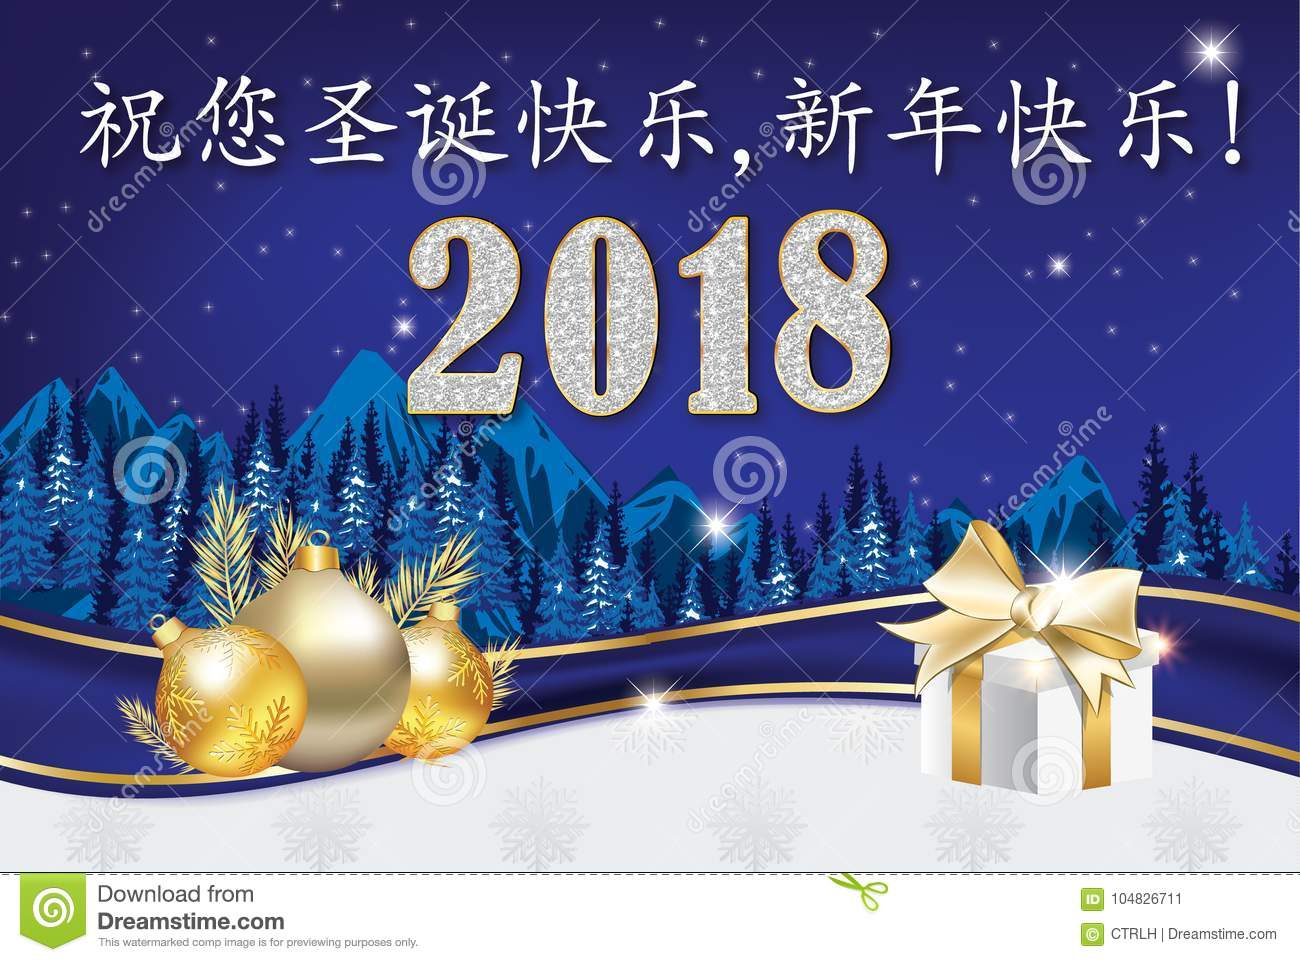 Merry Christmas And Happy New Year 2018 Written In Chinese